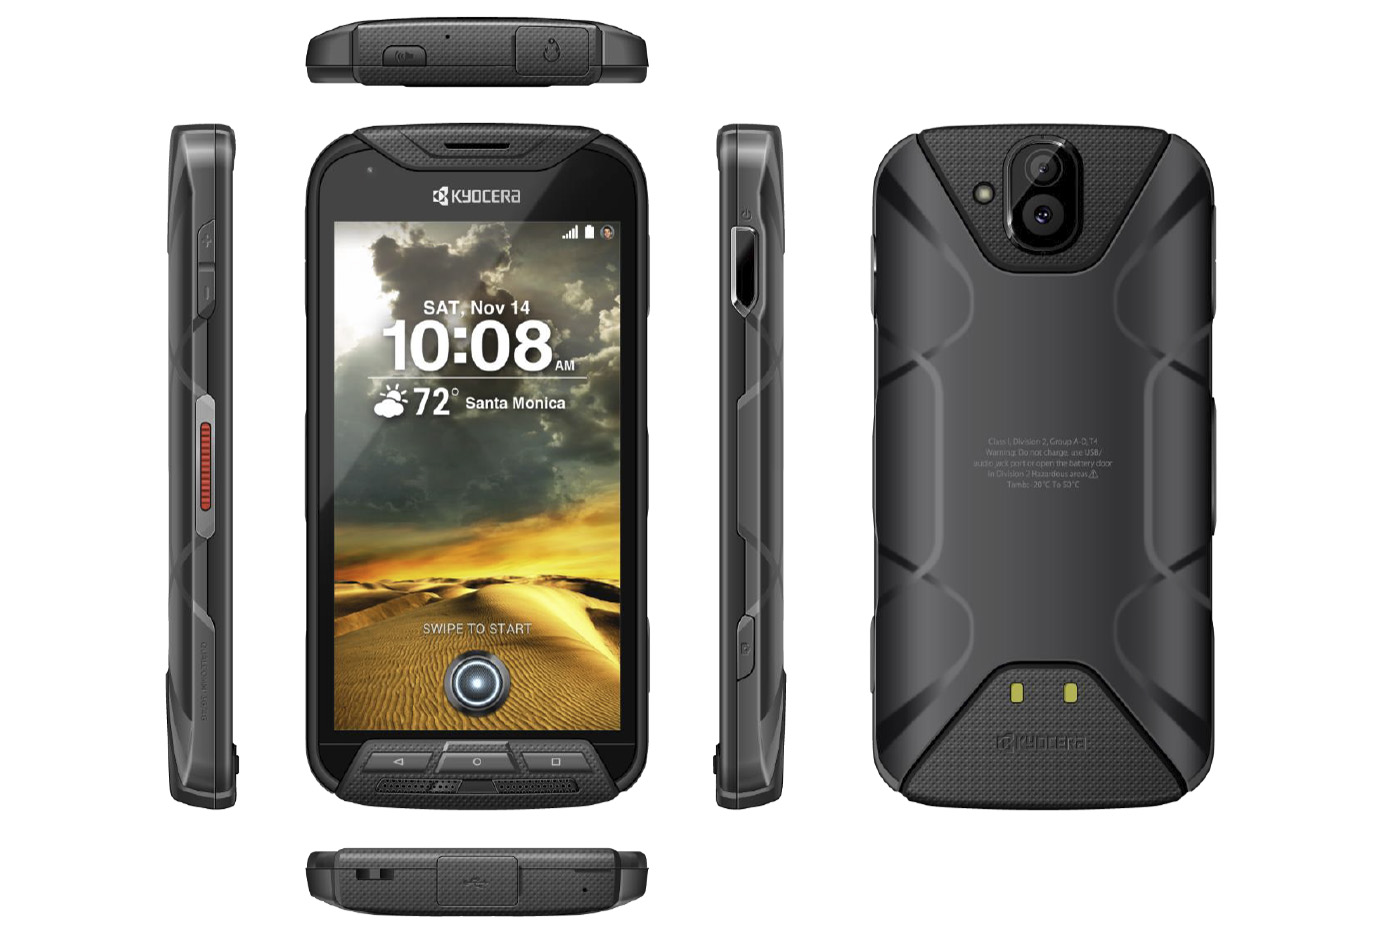 Kyocera S Duraforce Pro Is An Action Cam And Smartphone